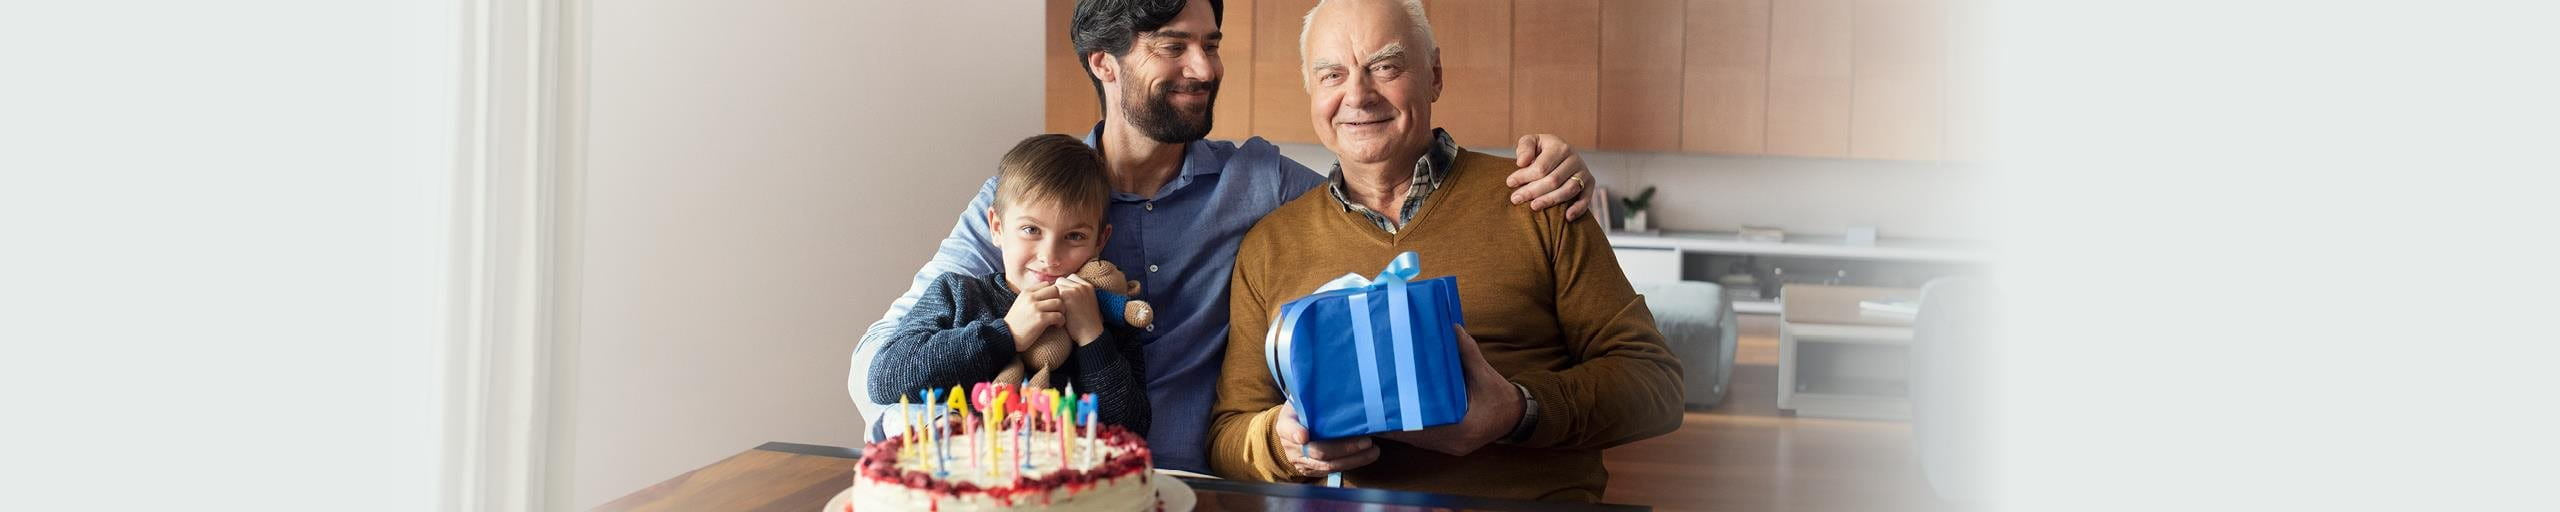 Father, son and grandson with birthday cake and present